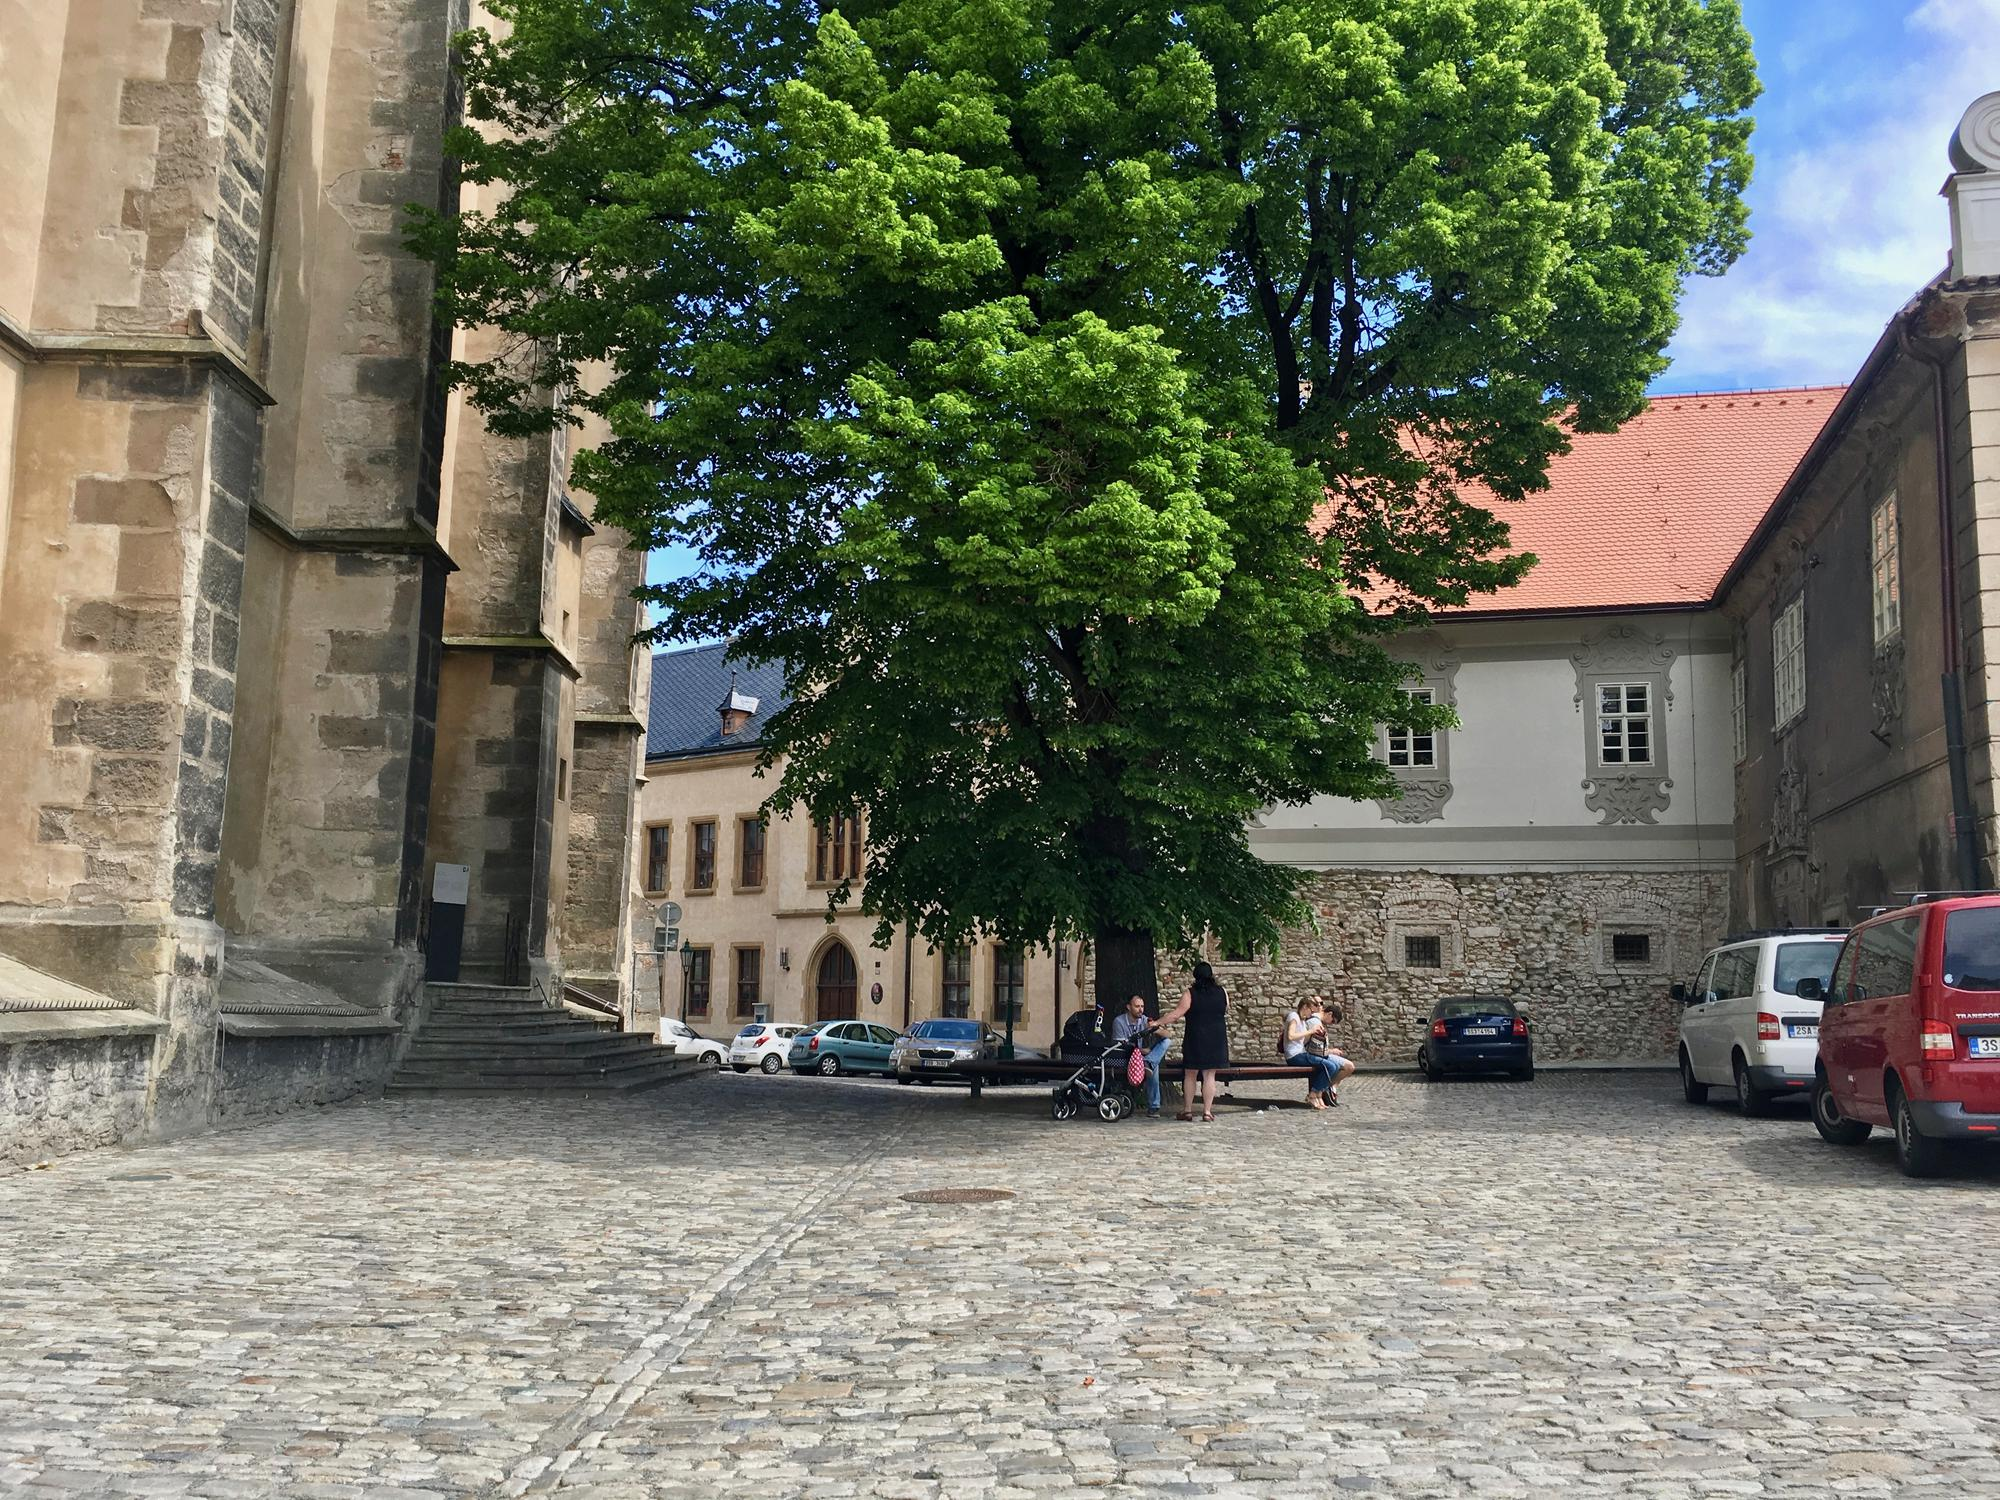 🇨🇿 Kutna Hora, Czech Republic, may 2017.